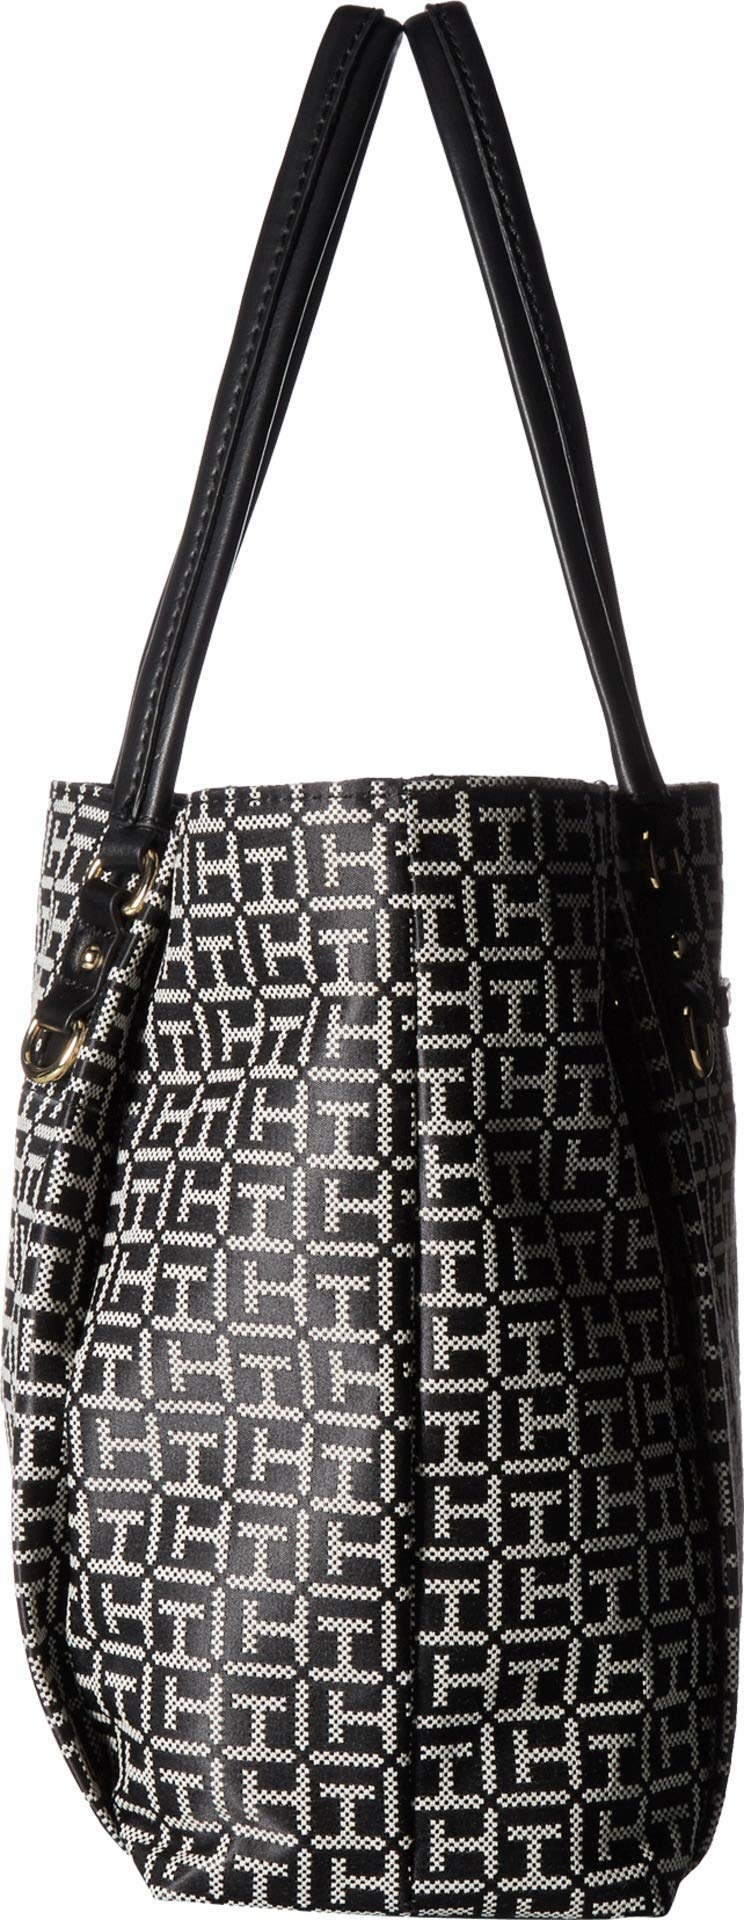 Tommy Hilfiger Women's Kelby Tote Black/White One Size by Tommy Hilfiger (Image #3)